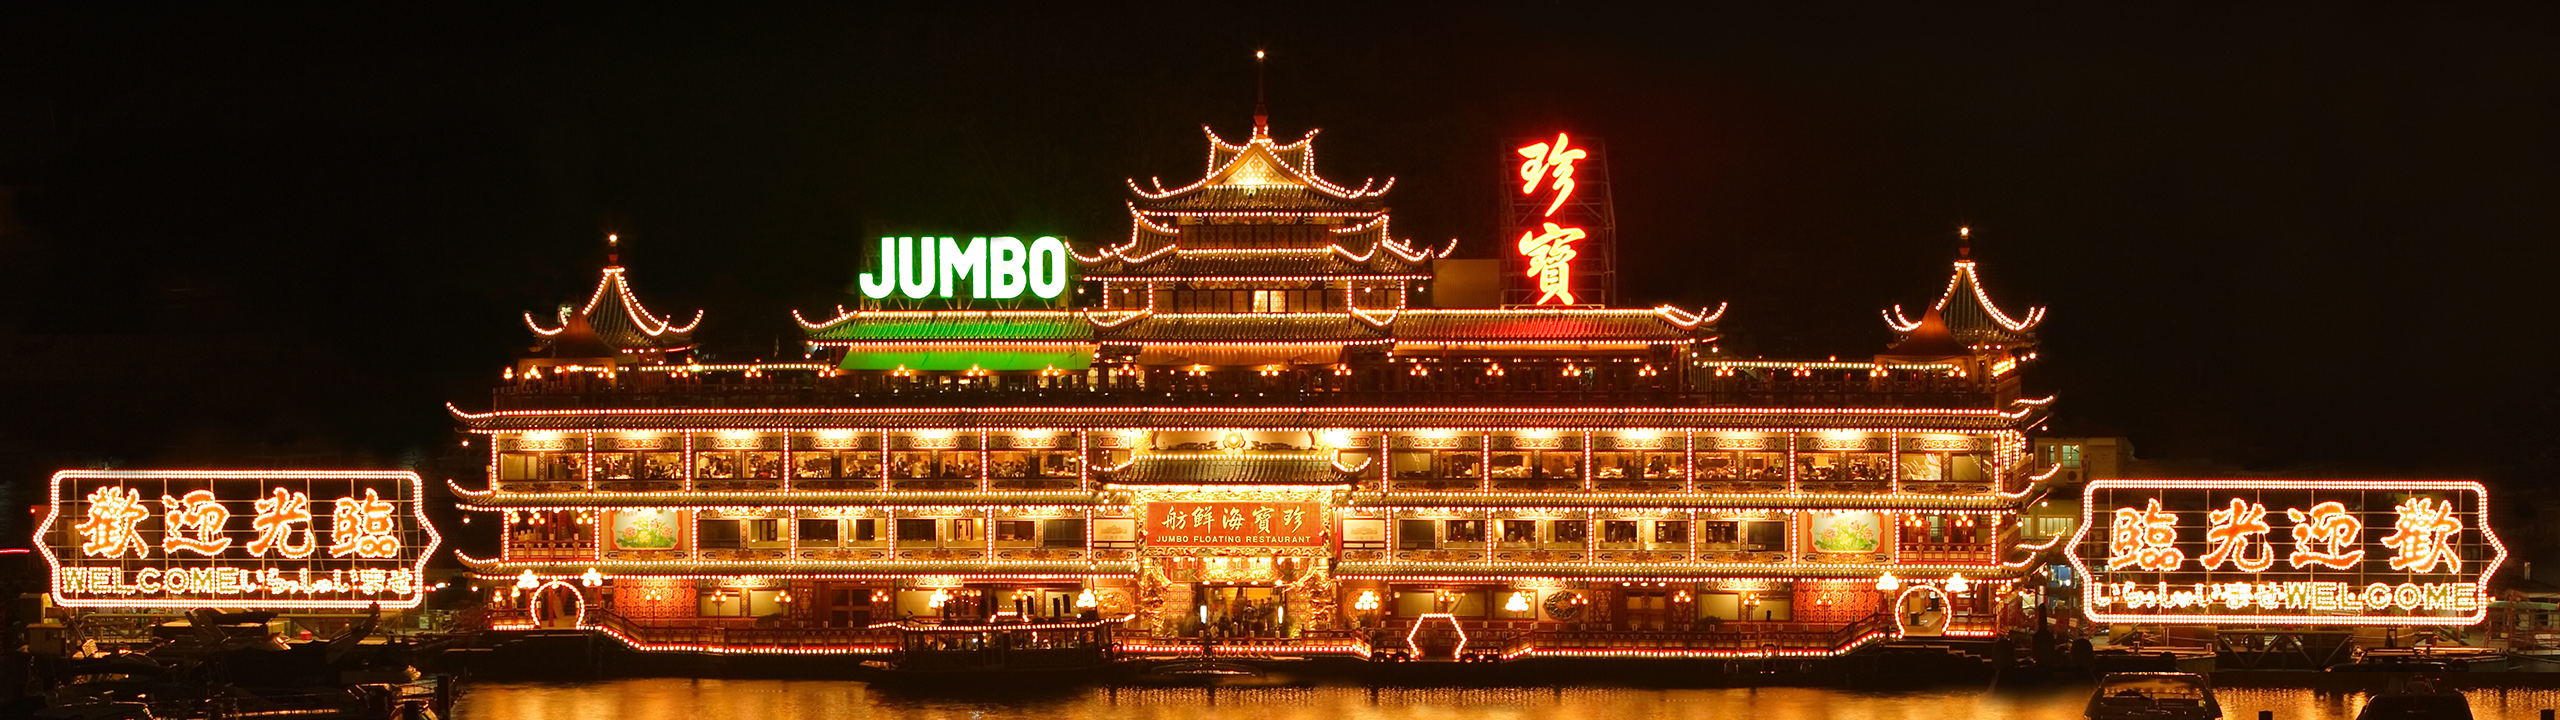 Image result for Jumbo Floating Restaurant